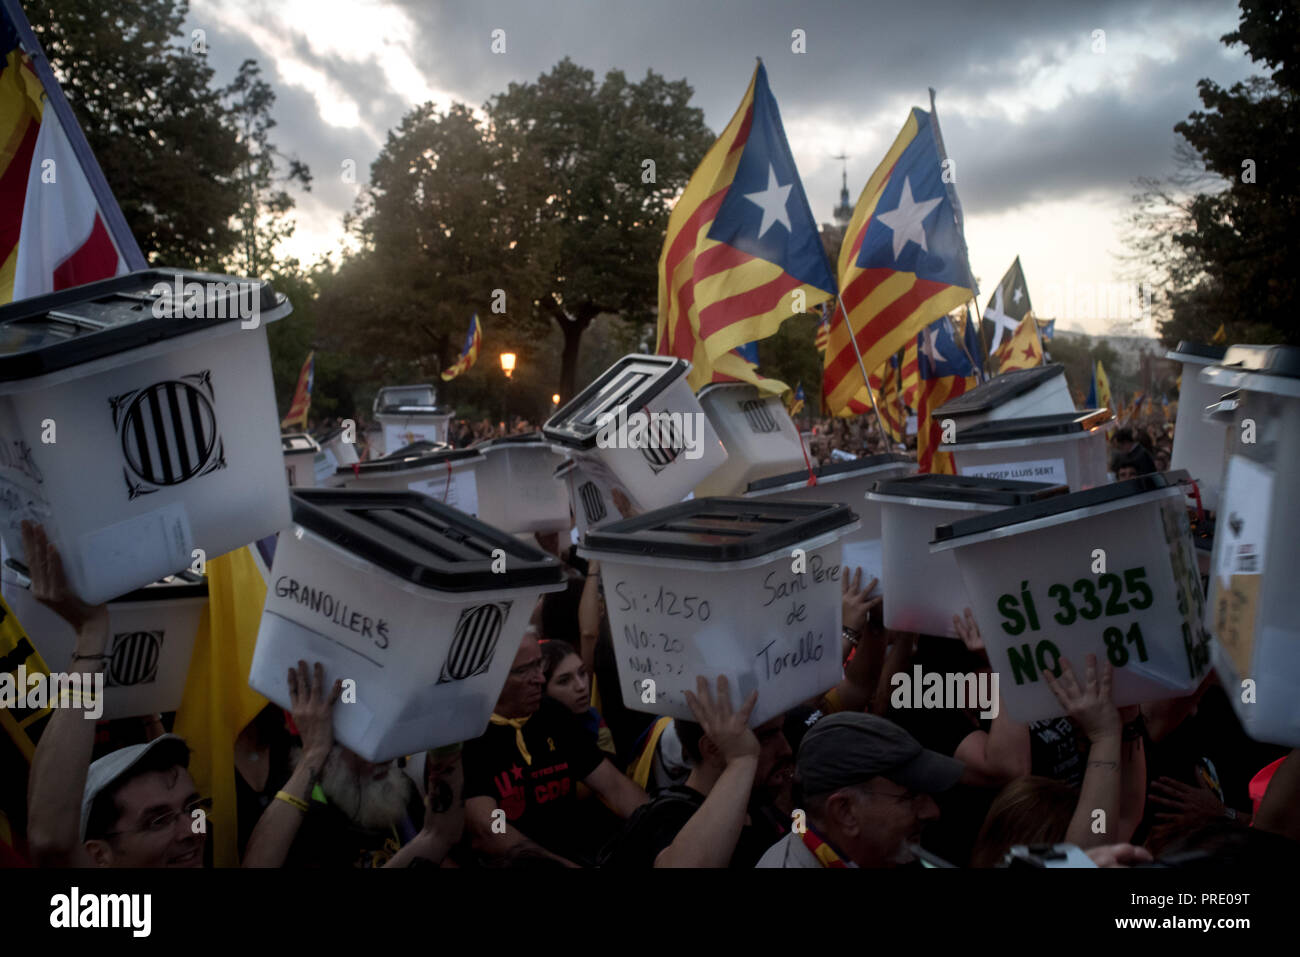 October 01, 2018 - Barcelona, Catalonia, Spain - People holding  ballot boxes used on past independence referendum banned by Spanish kingdom goes by  Barcelona  on first October 2018. Thousands marched in Barcelona remembering the referendum on independence held a year ago that led hundreds of injured voters due the Spanish police crackdown. - Stock Image